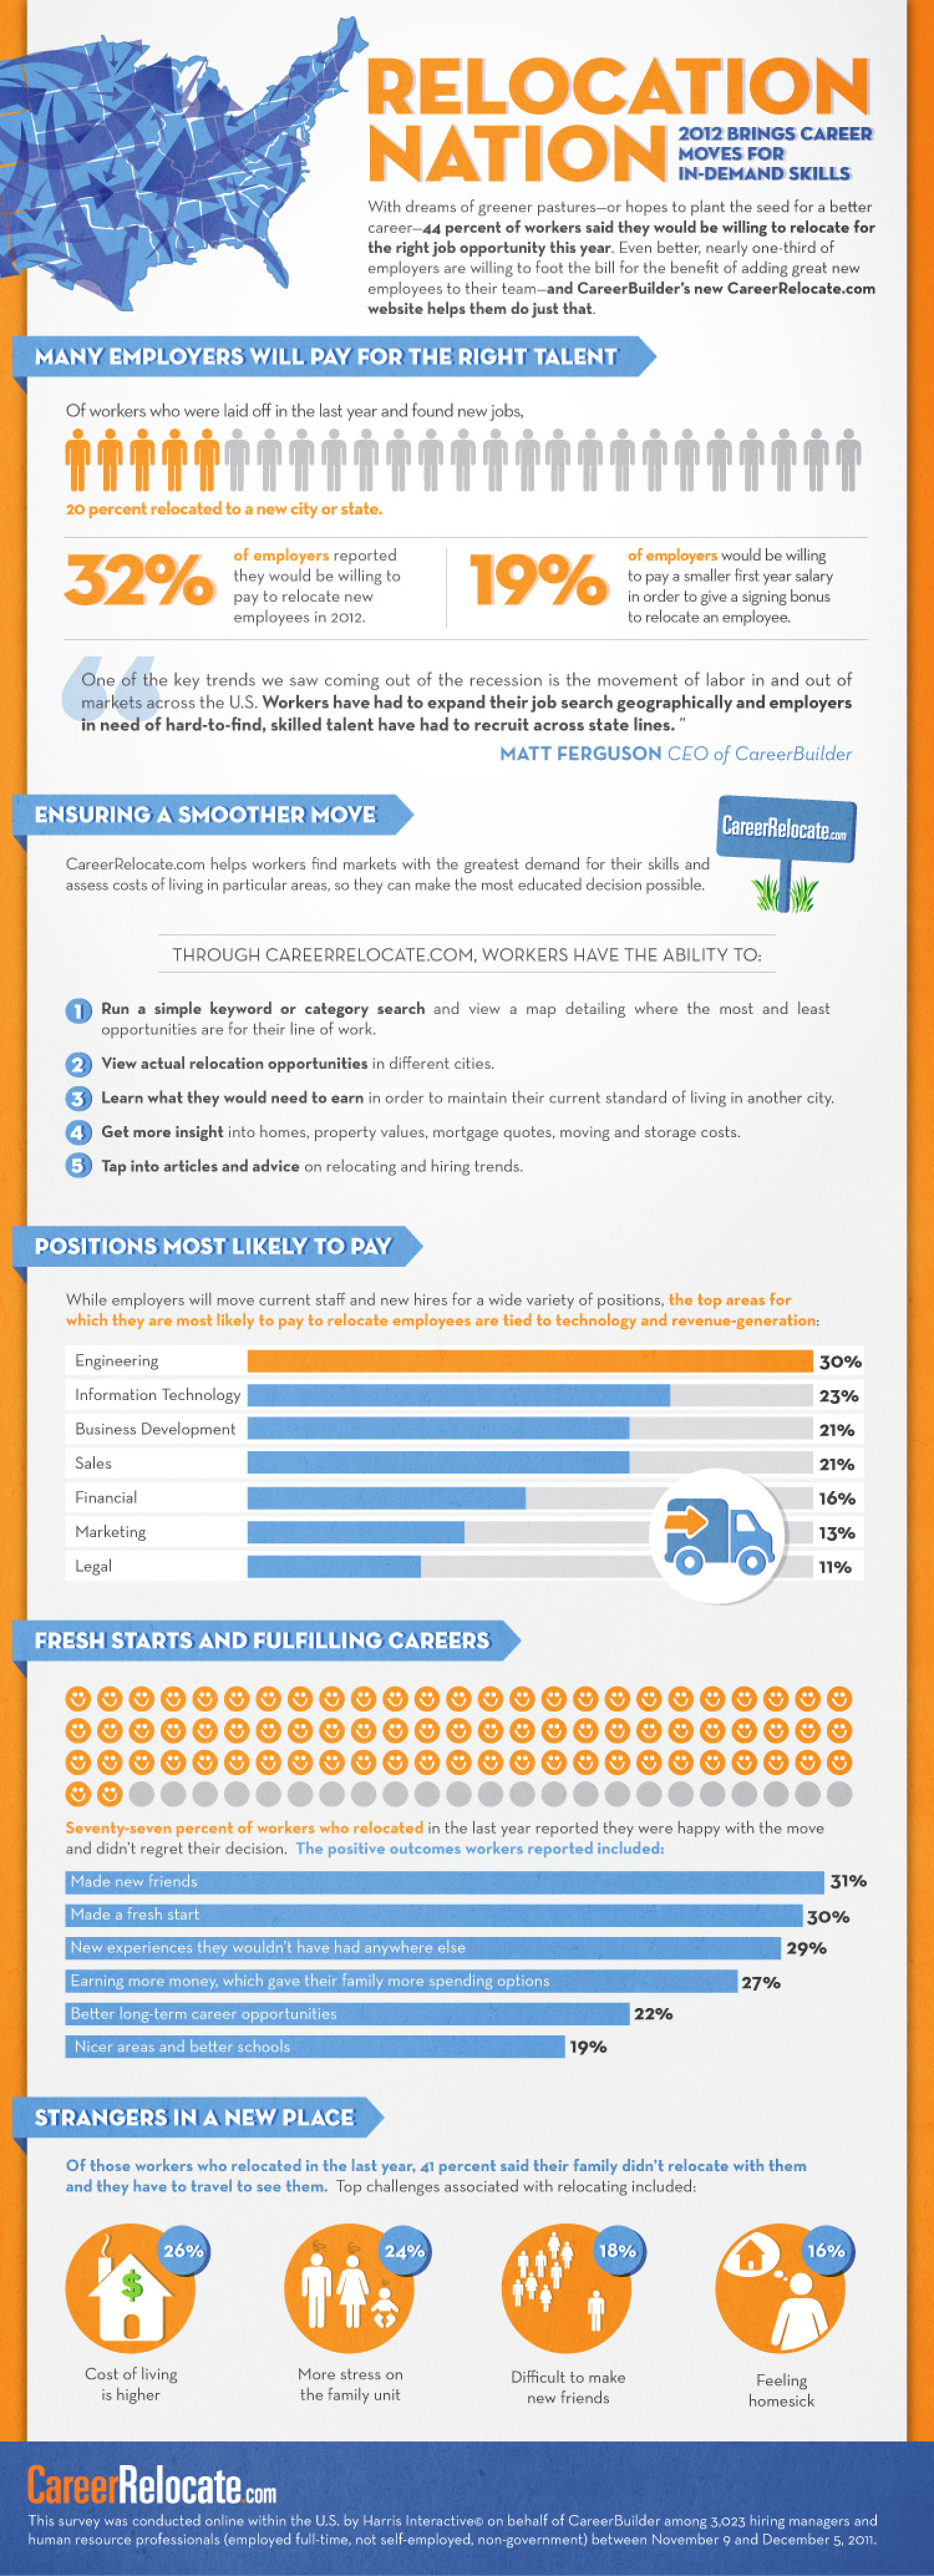 Relocation Nation: 2012 Brings Career Moves for In-demand Skills Infographic